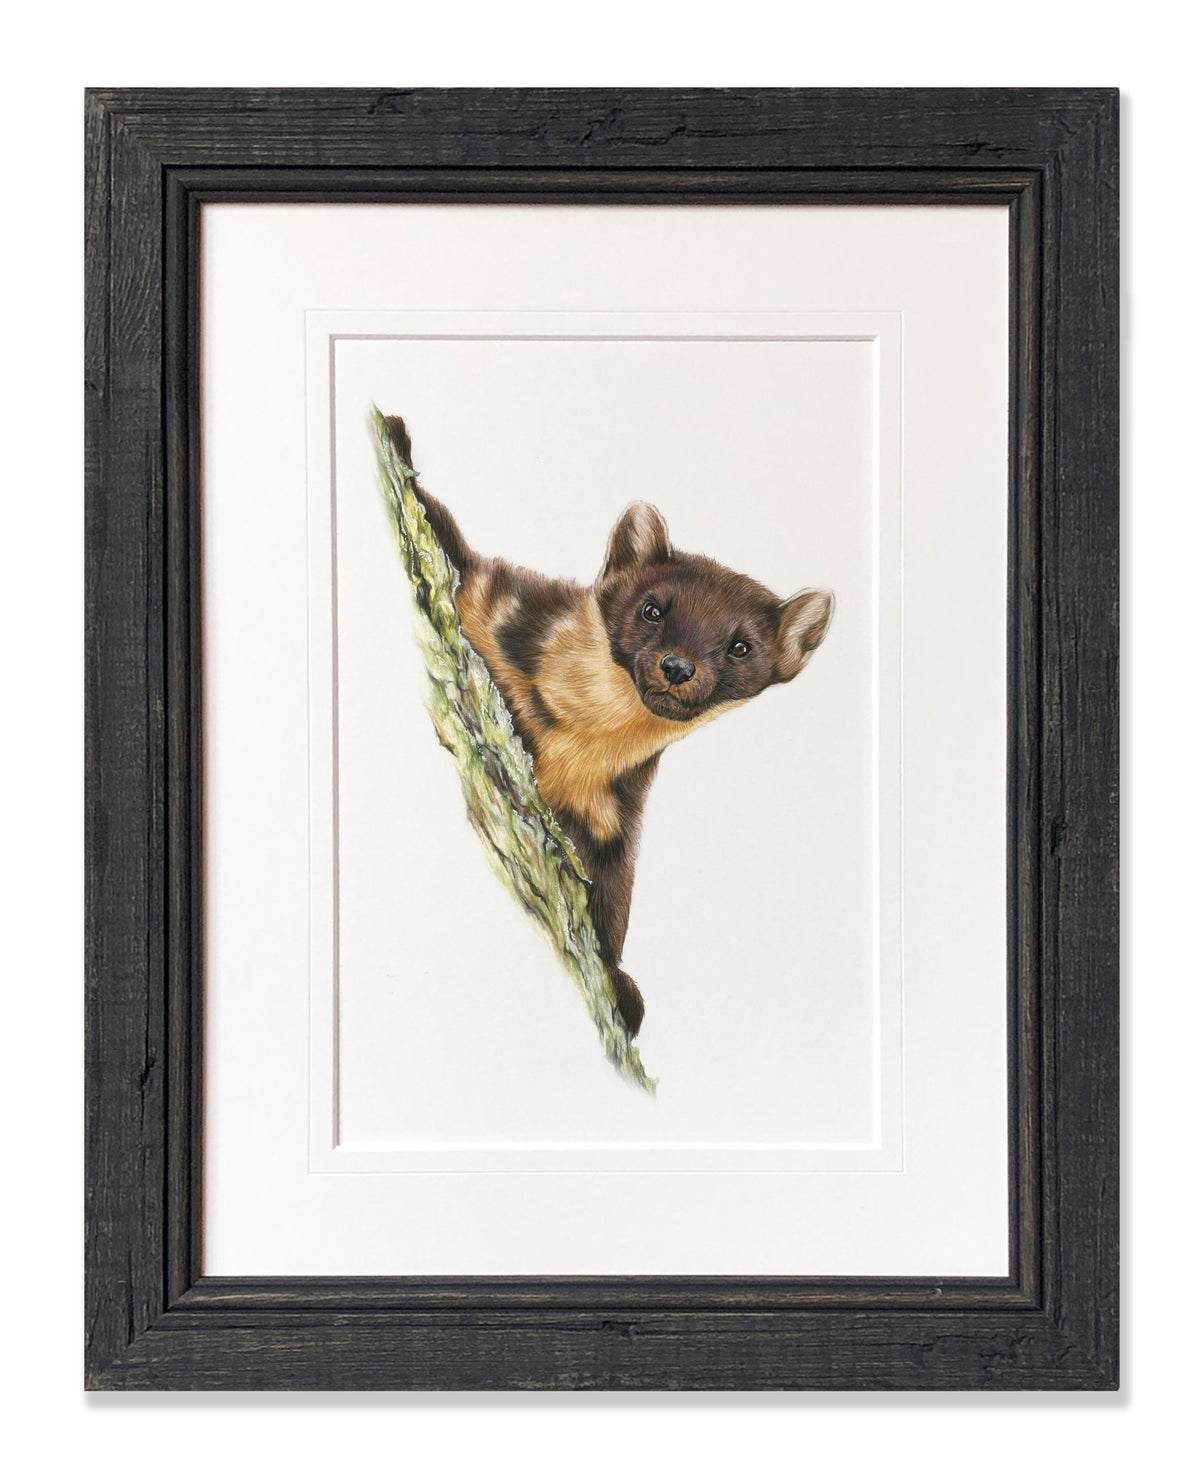 Image of Pine Marten - Limited Edition Print